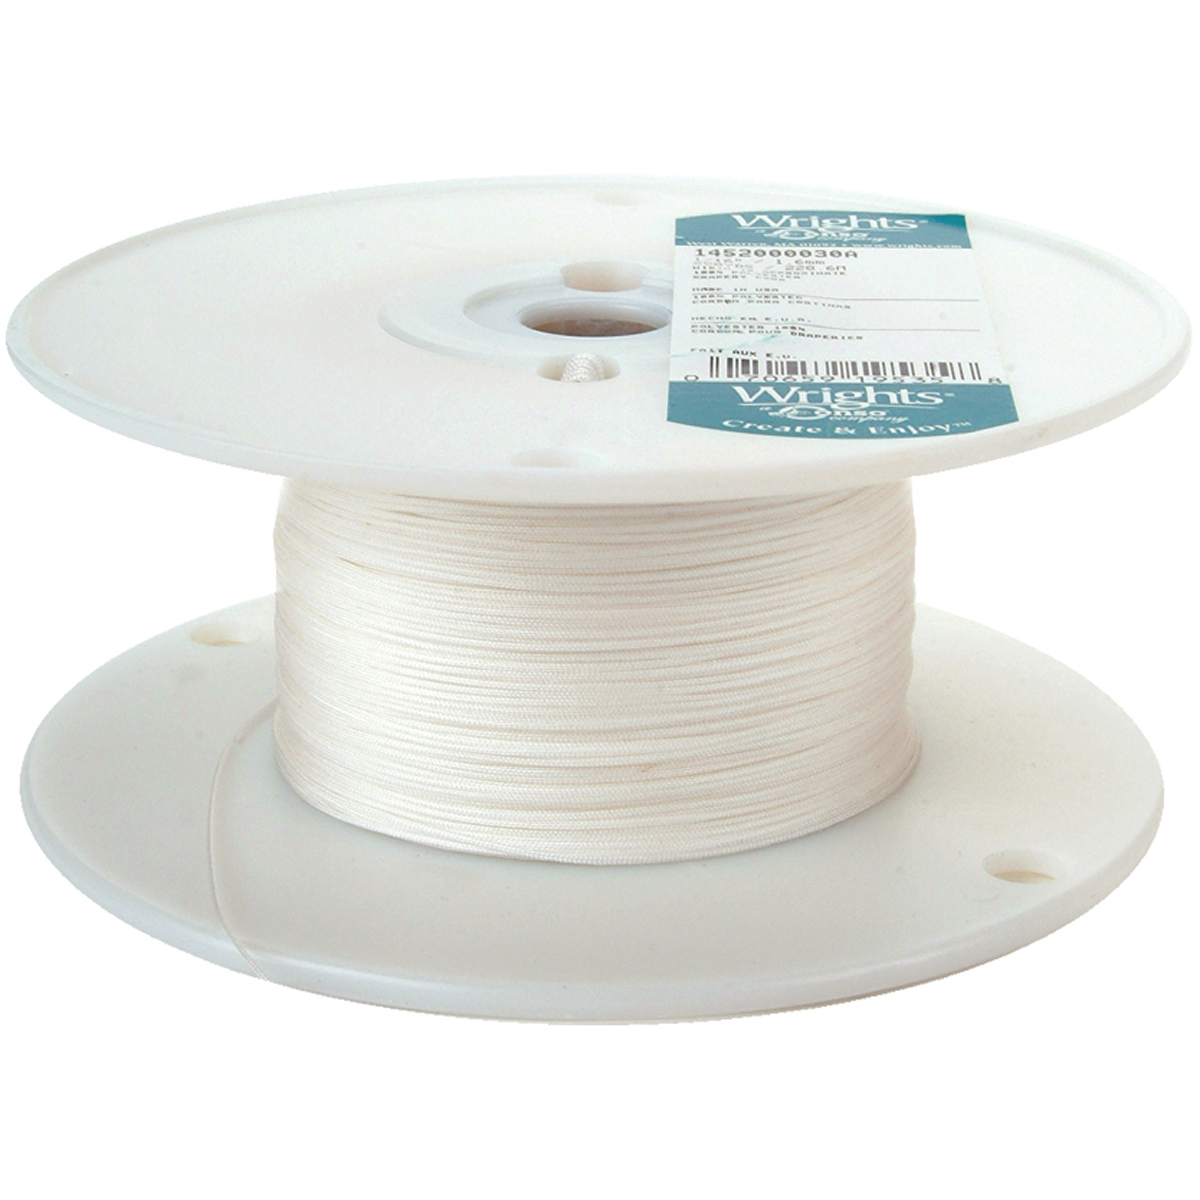 "Wrights Poly Drapery Cord, 1/16"" x 250 yds"